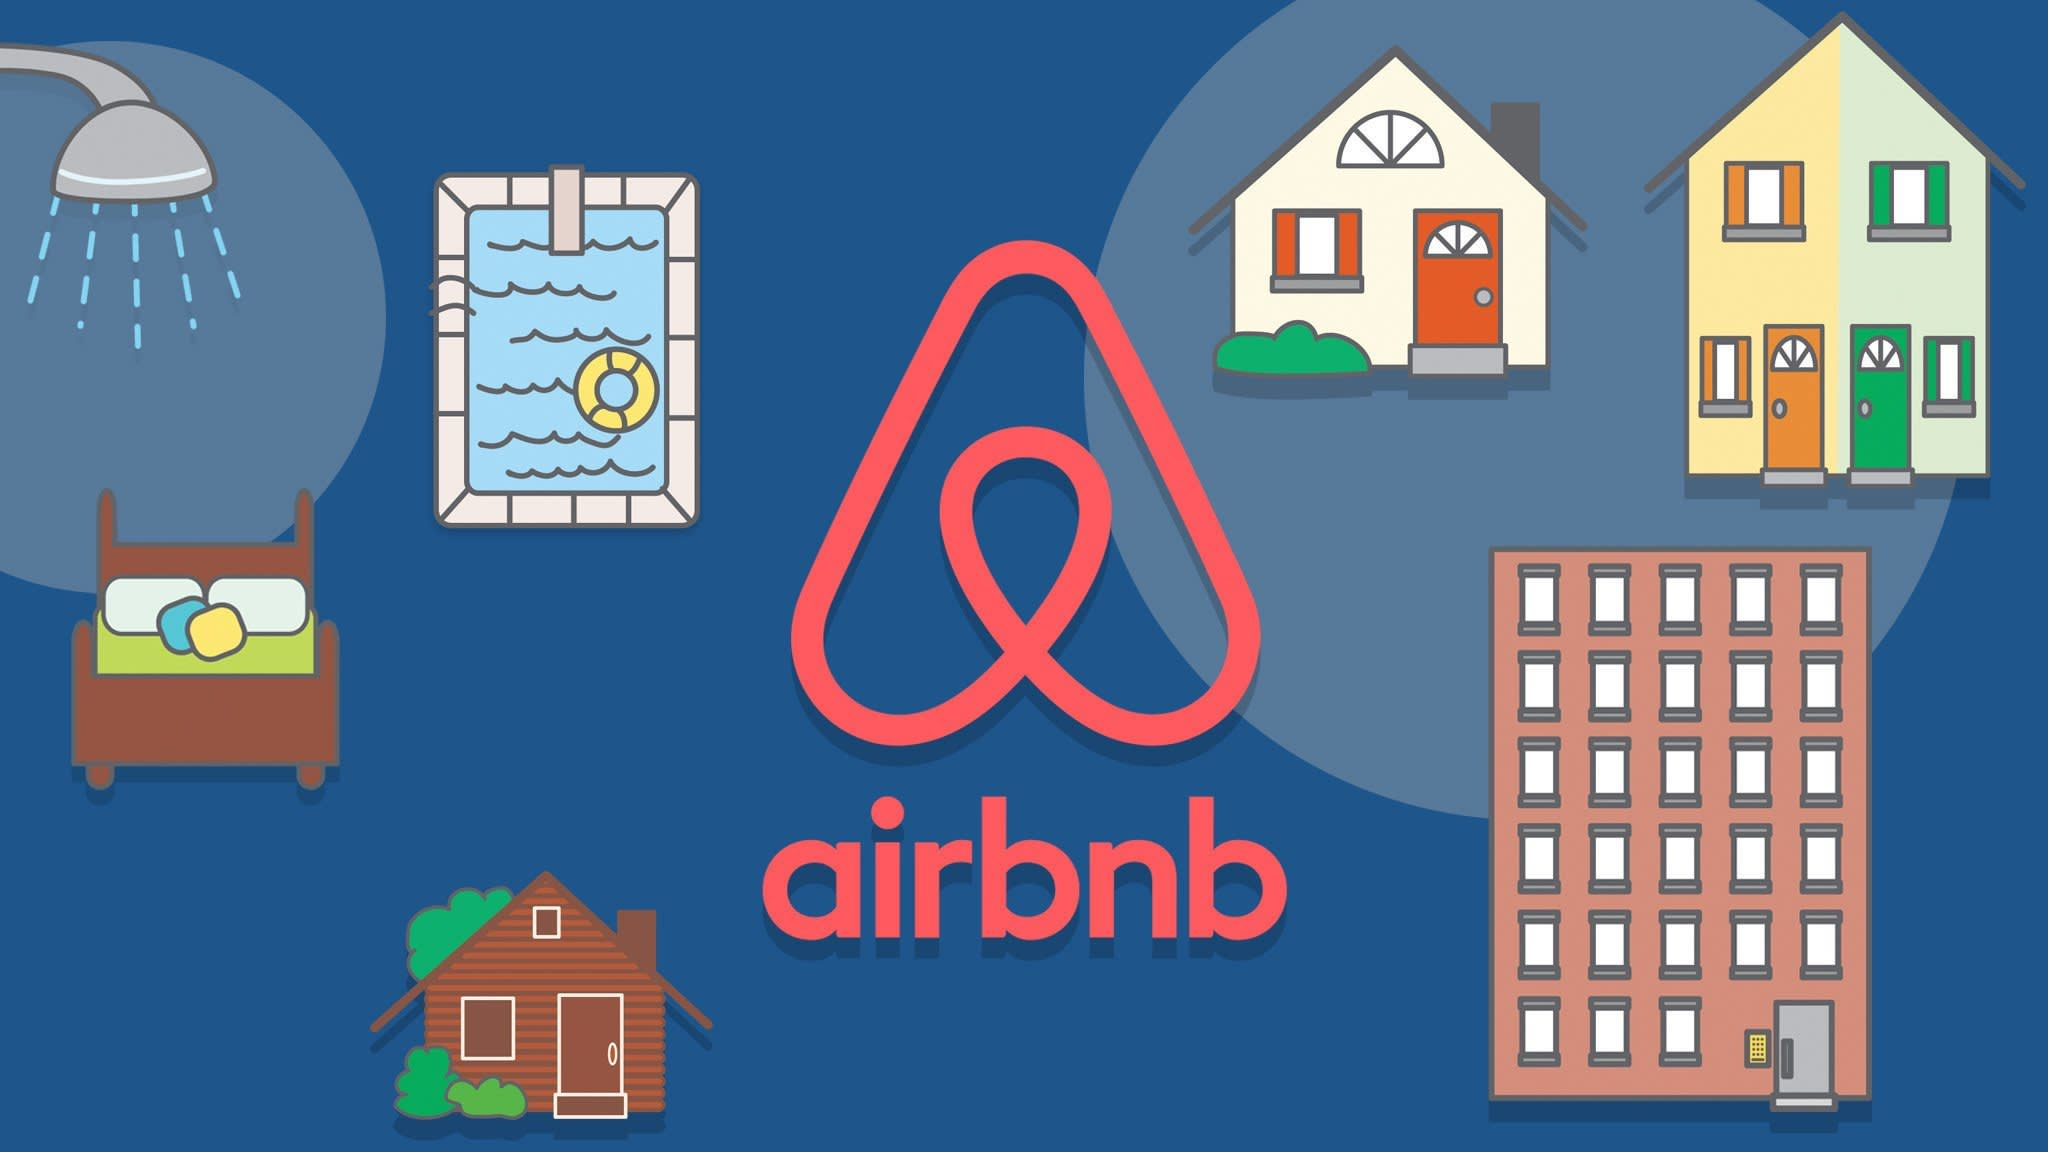 How Airbnb became key to turning homes into businesses